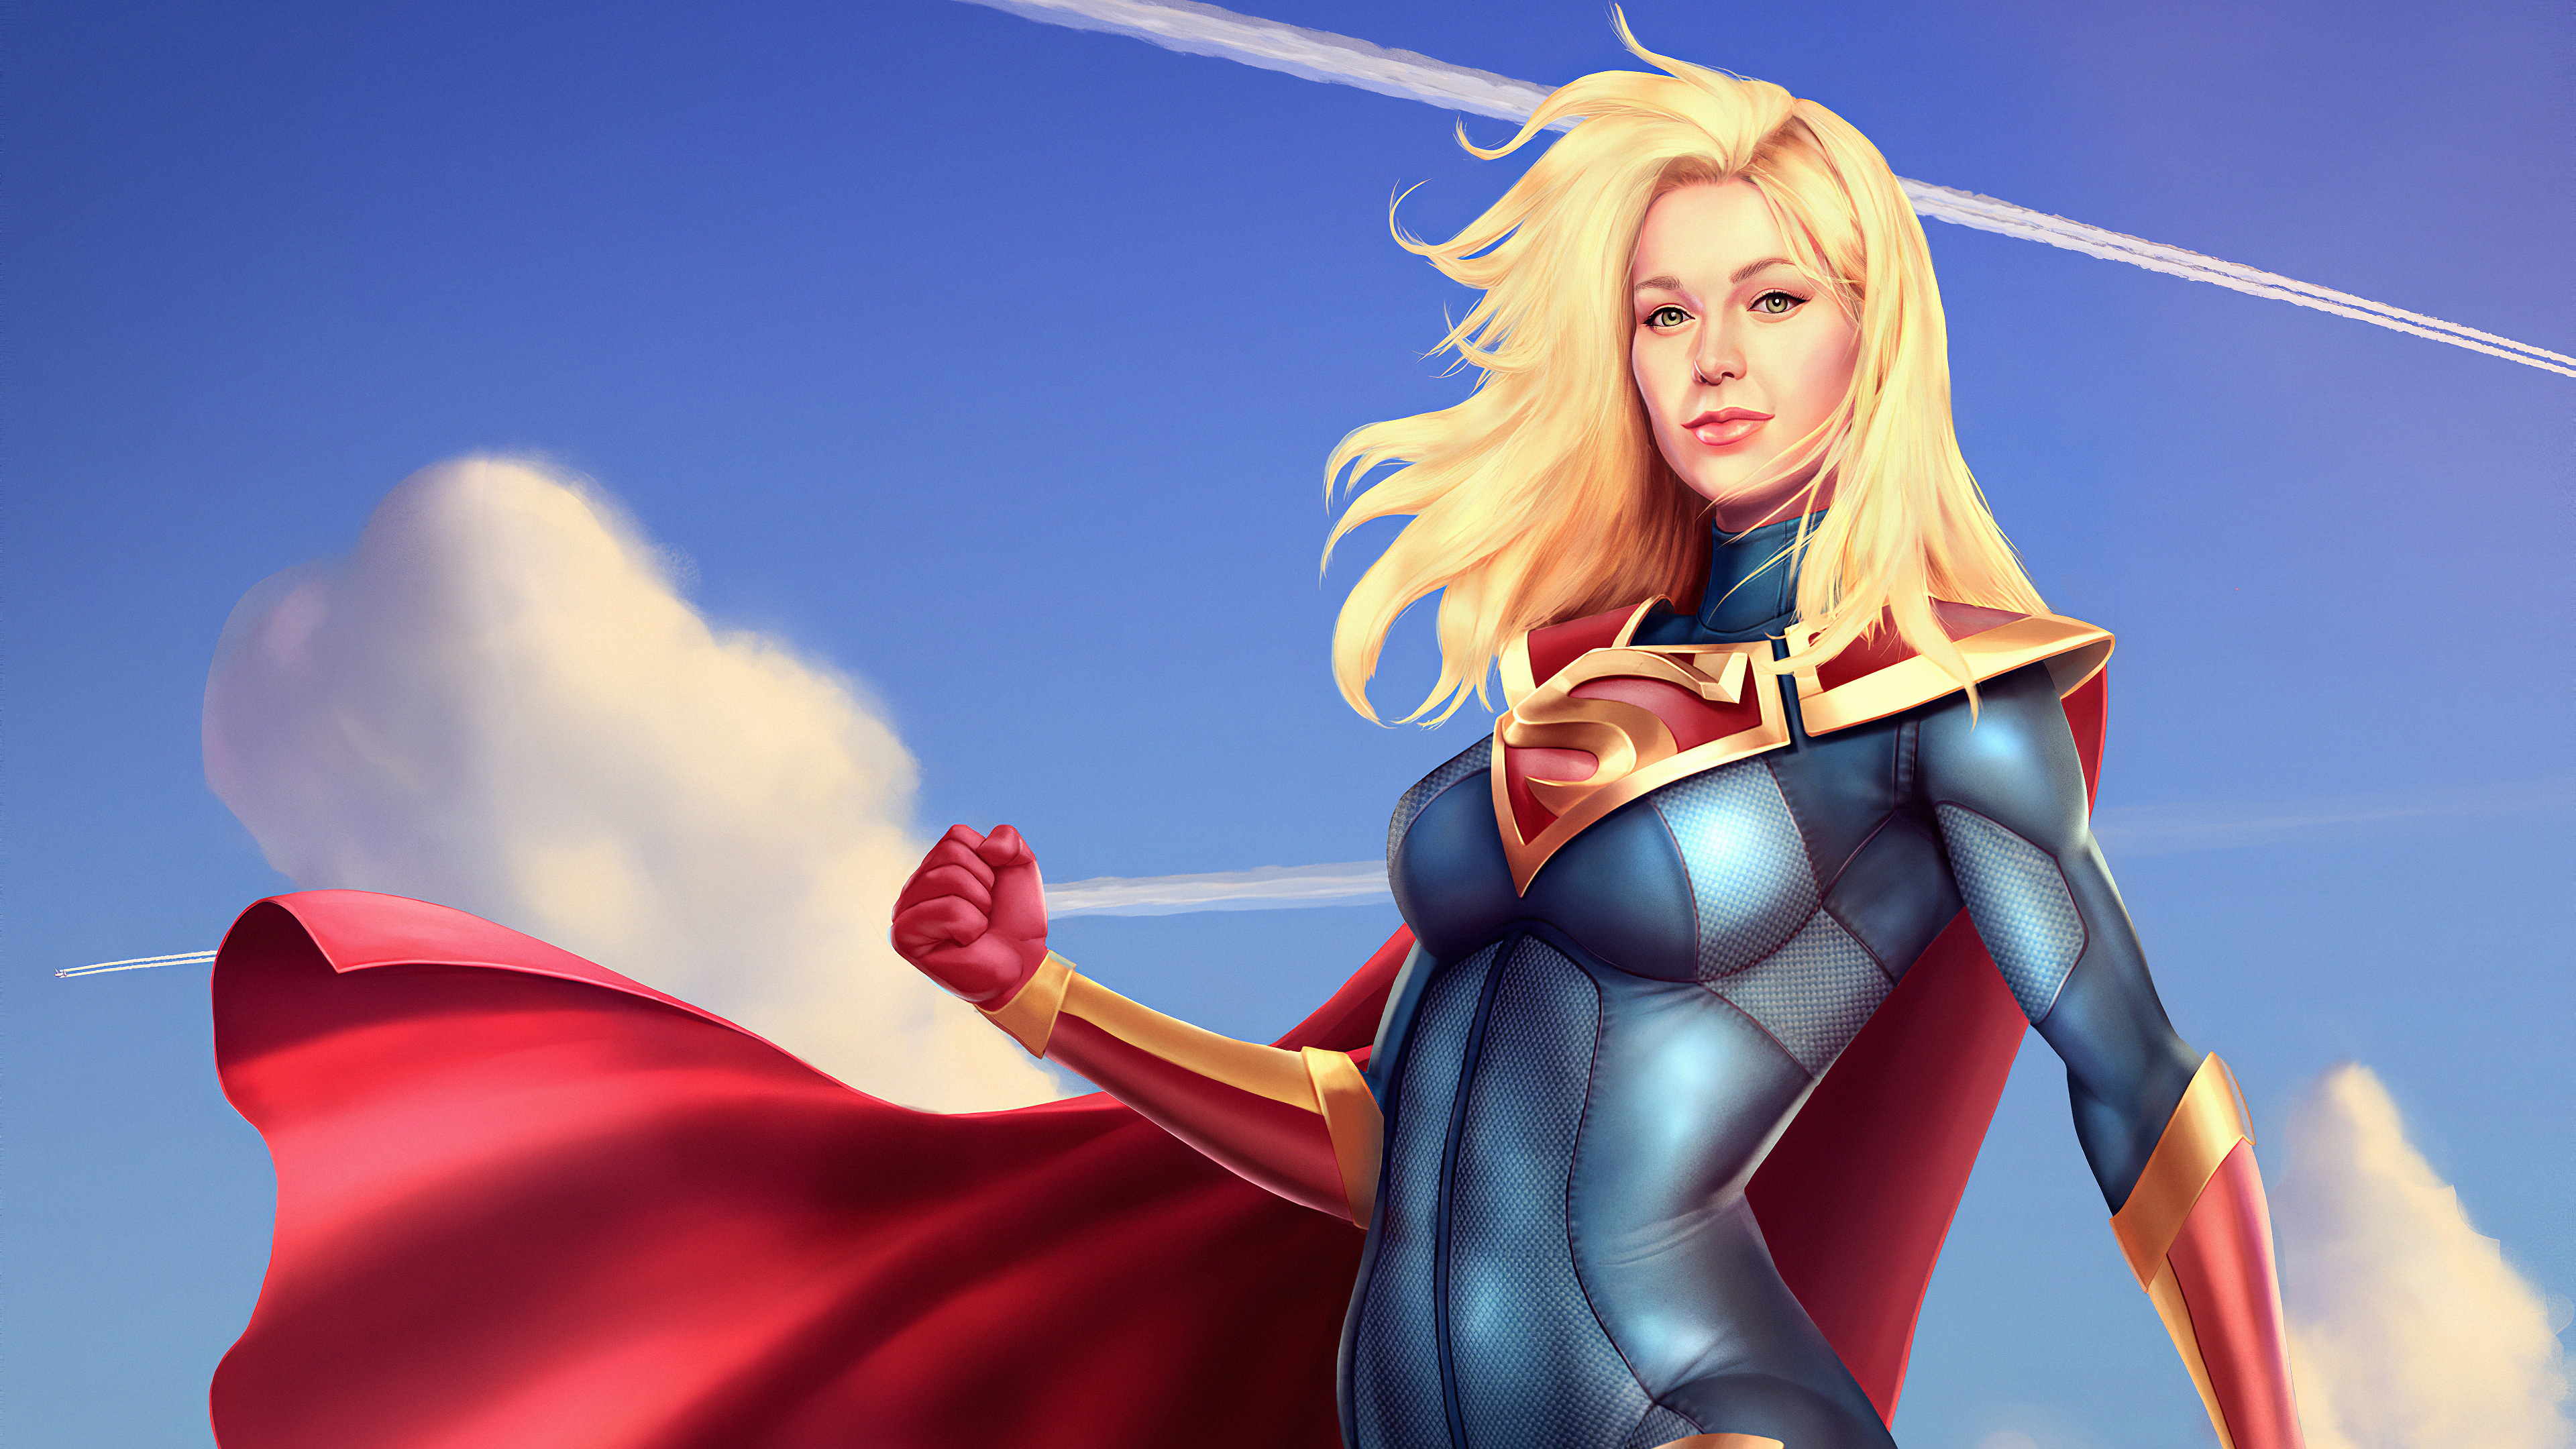 supergirl fanart 1576097597 - Supergirl FanArt - Supergirl Fan art 4k wallpaper, super girl 4k wallpaper